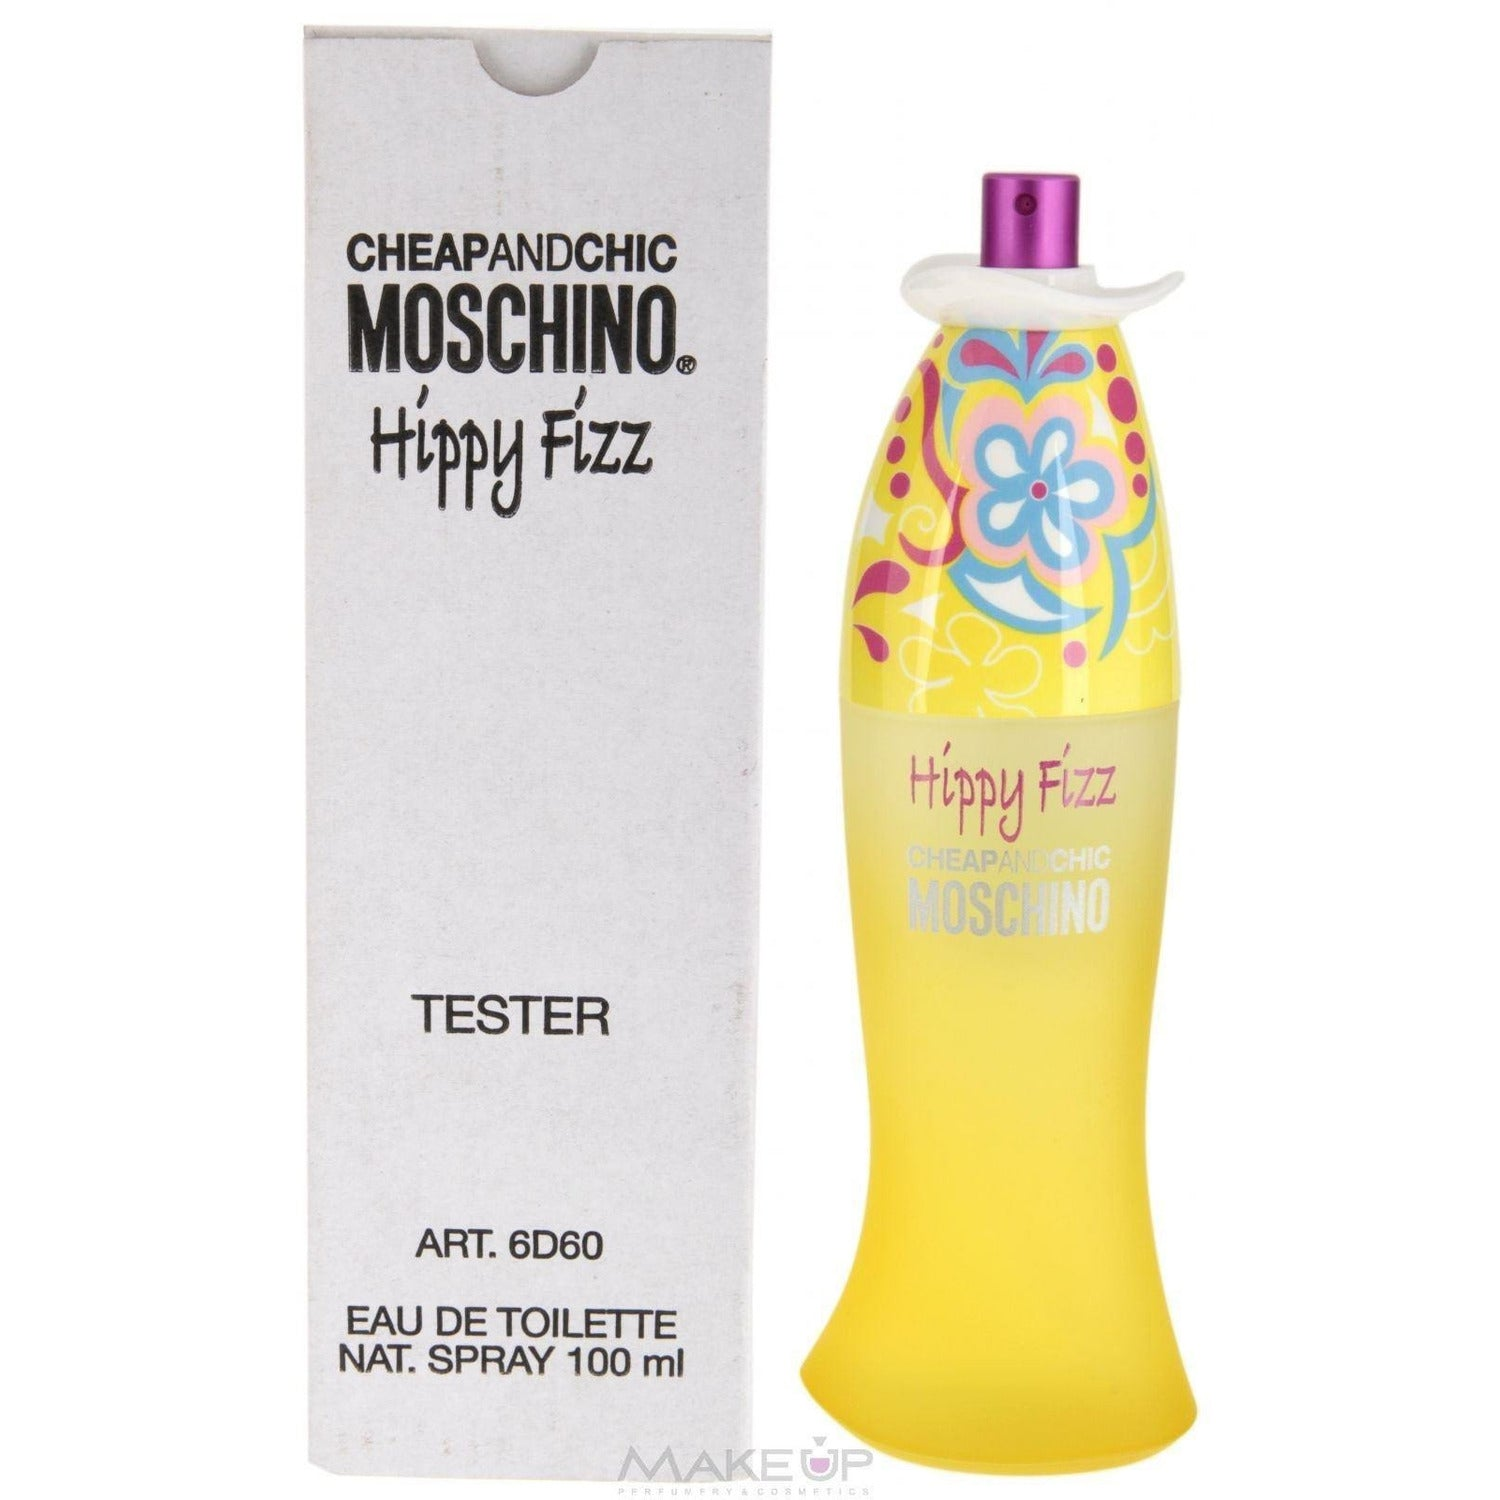 moschino-hippy-fizz-cheap-chic-perfume-3-4-oz-edt-new-tester